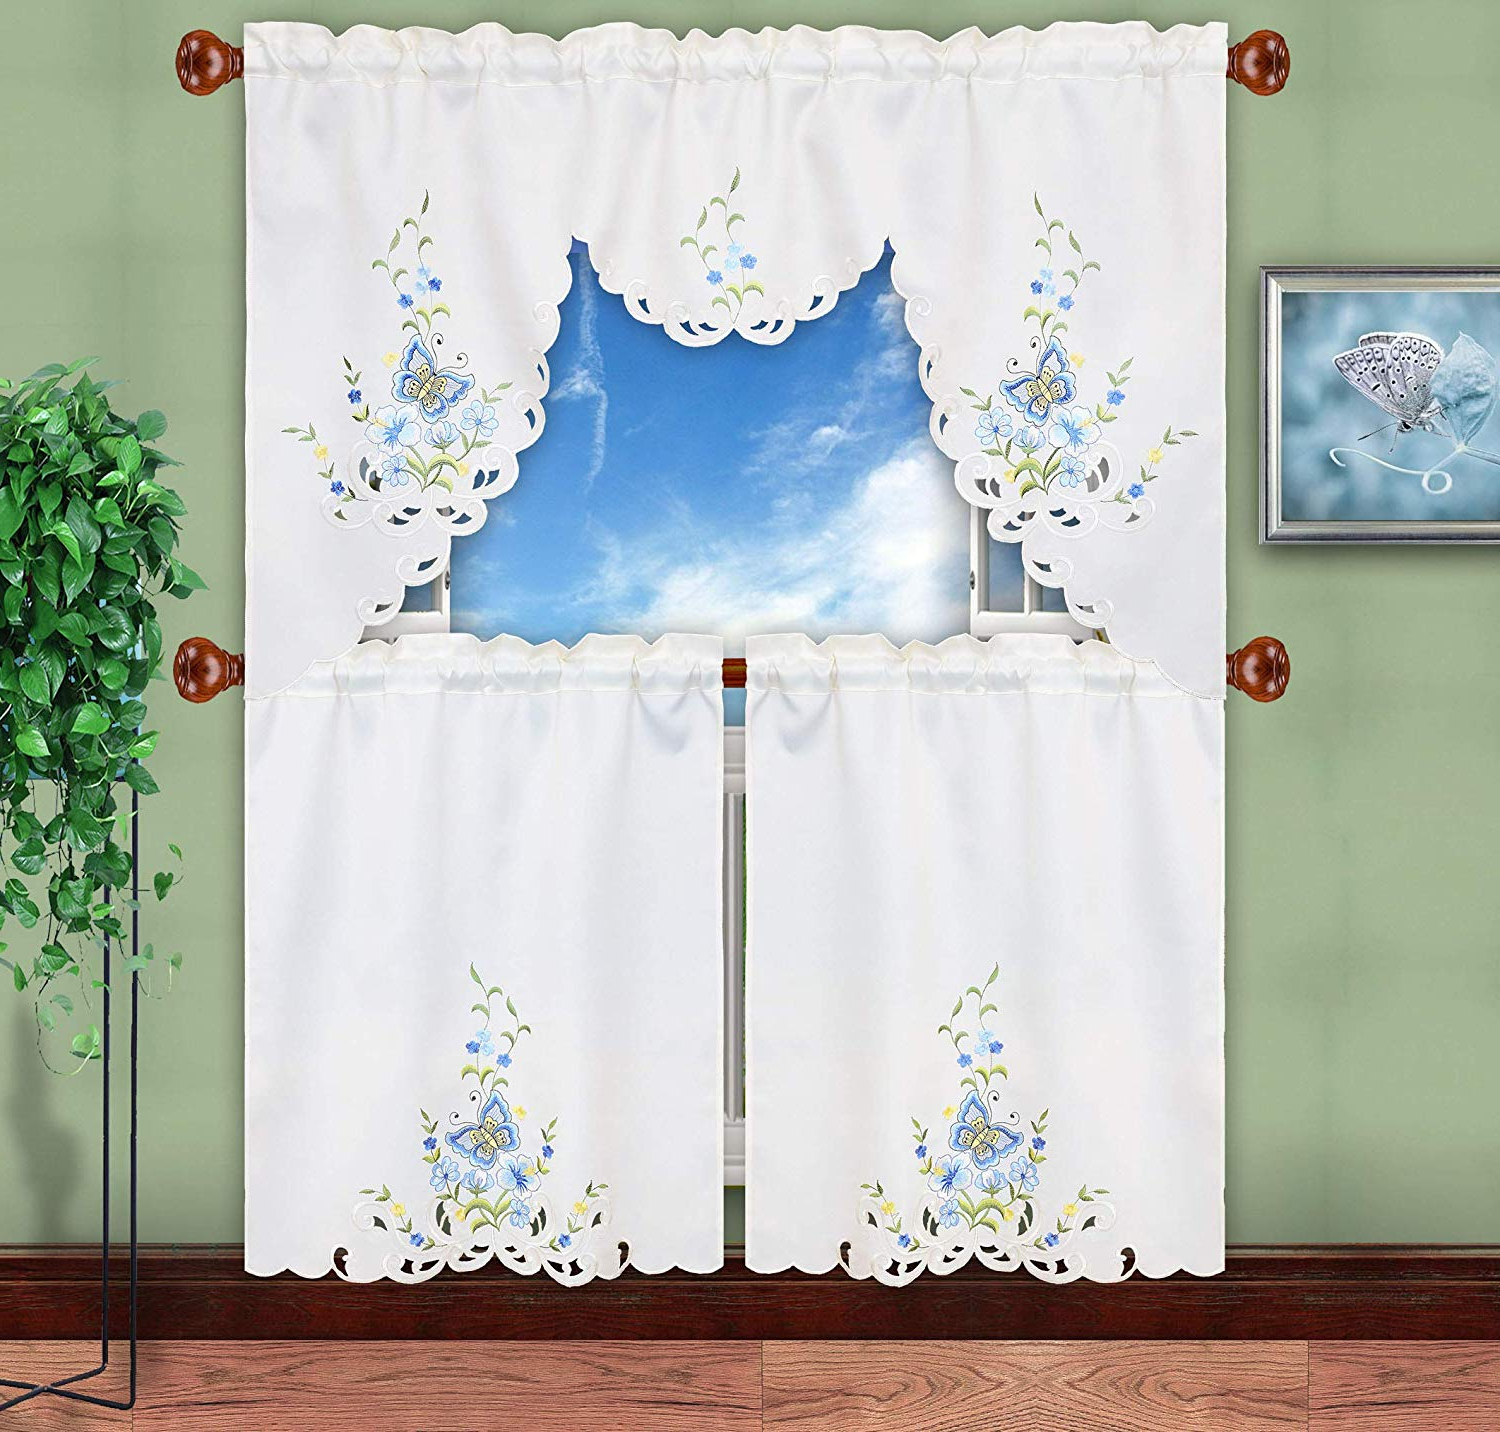 Recent Simhomsen Embroidered Butterfly Kitchen Curtain Swag And Tiers Set For Spring And Summer, Window Treatment, Decorations (blue) Within Cotton Blend Ivy Floral Tier Curtain And Swag Sets (View 16 of 20)